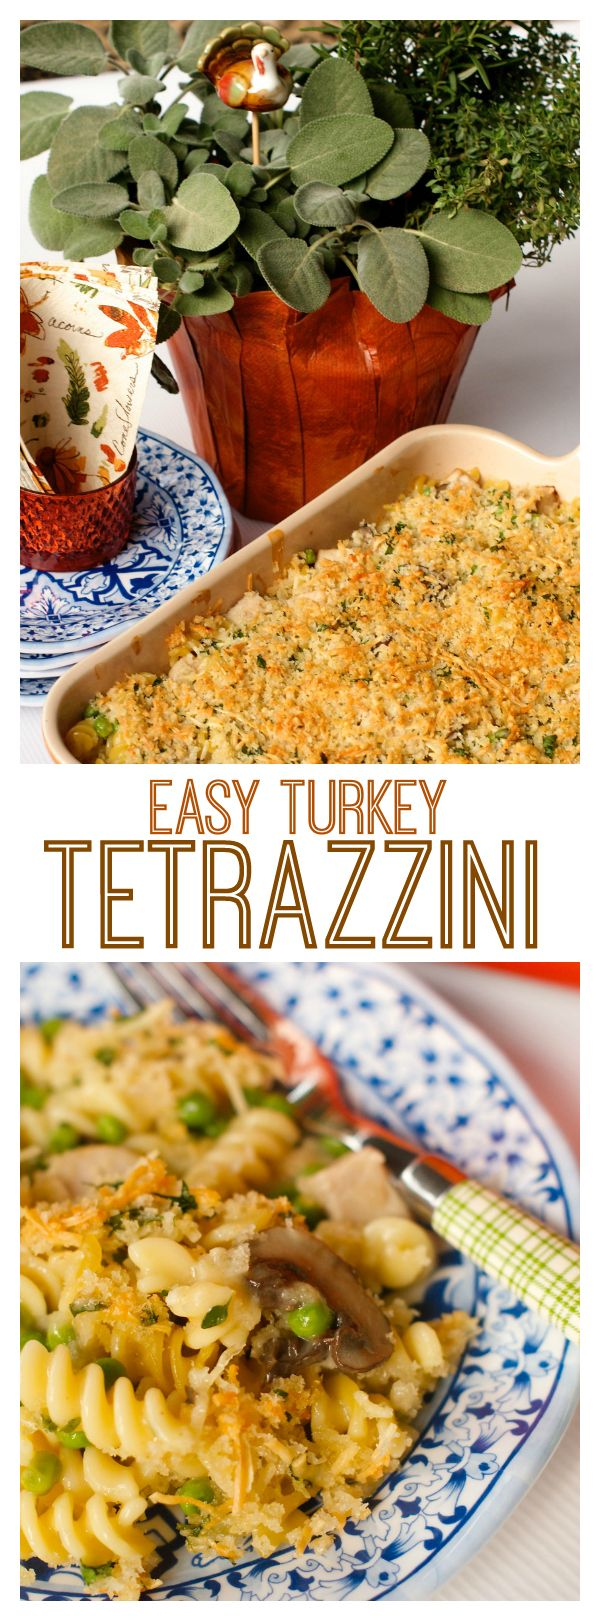 Easy Turkey Tetrazzini with breadcrumb topping, combined with turkey, noodles, peas and mushrooms.